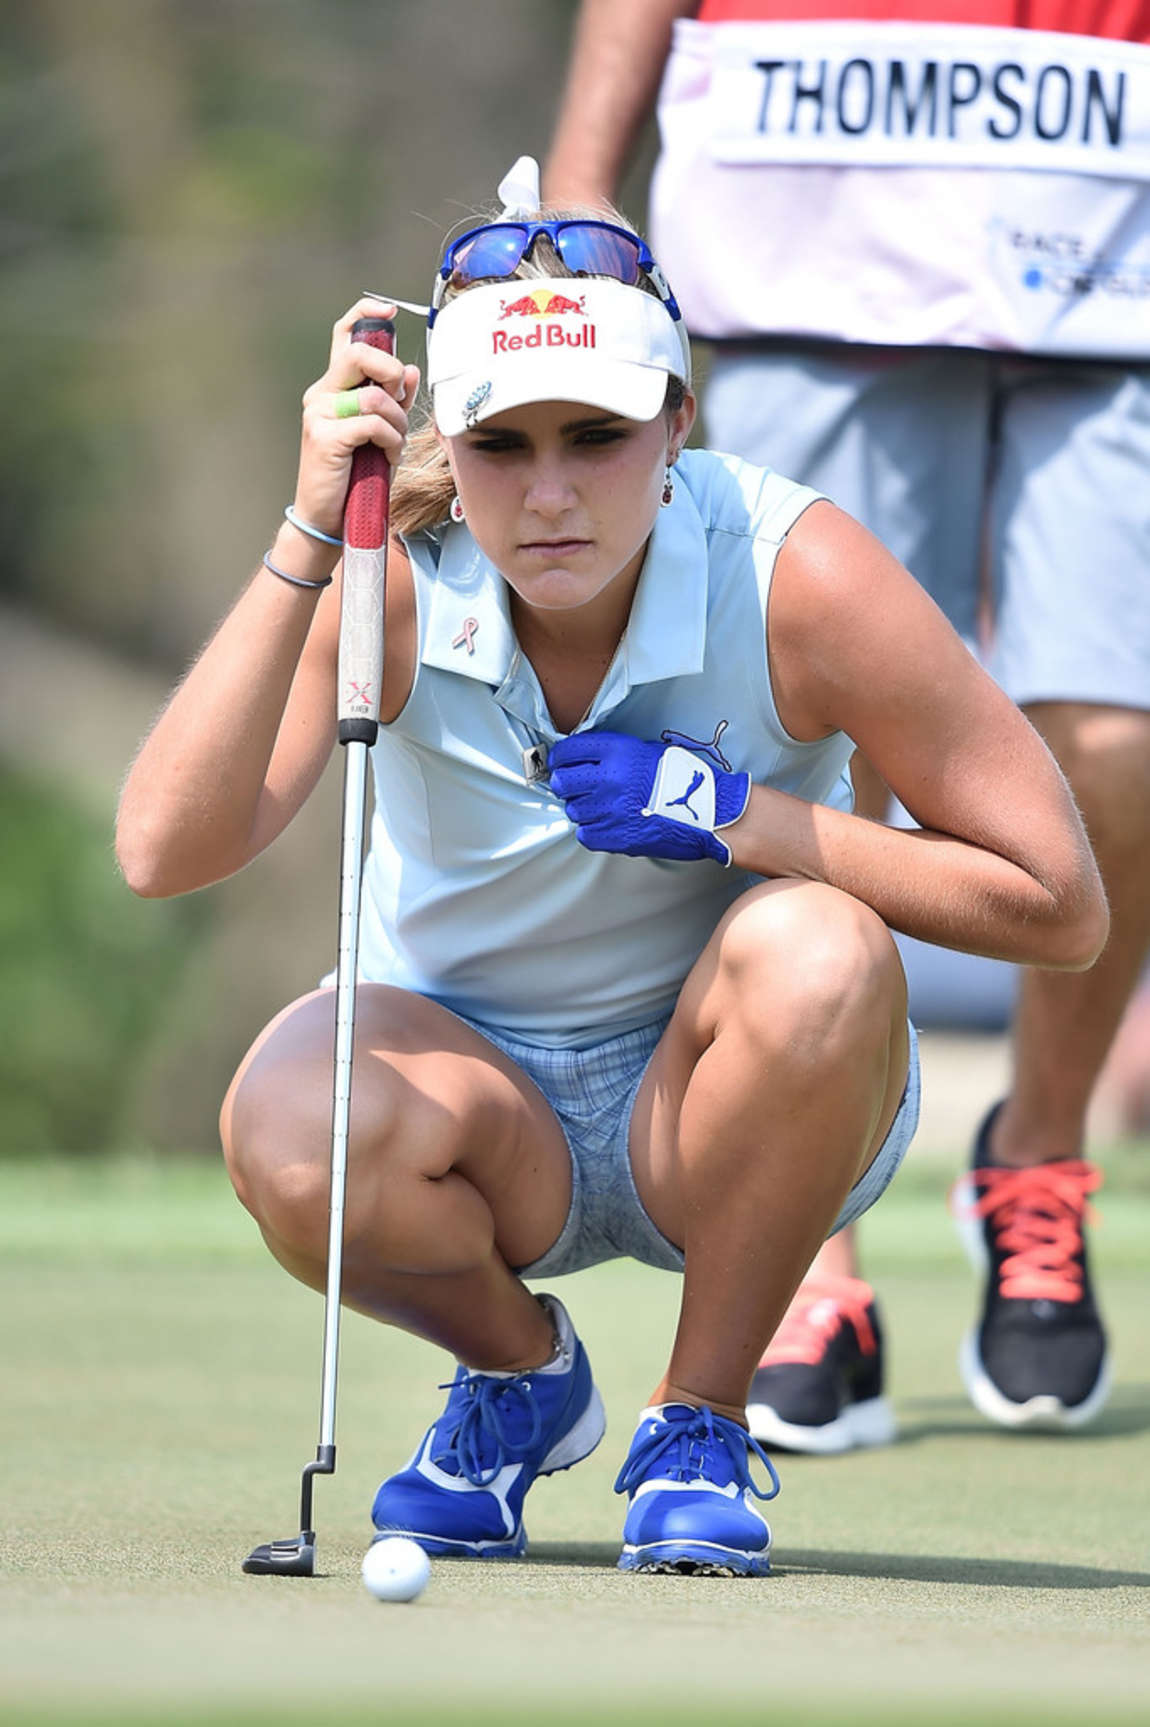 Pics Lexi Thompson nudes (72 photo), Sexy, Sideboobs, Twitter, cleavage 2020